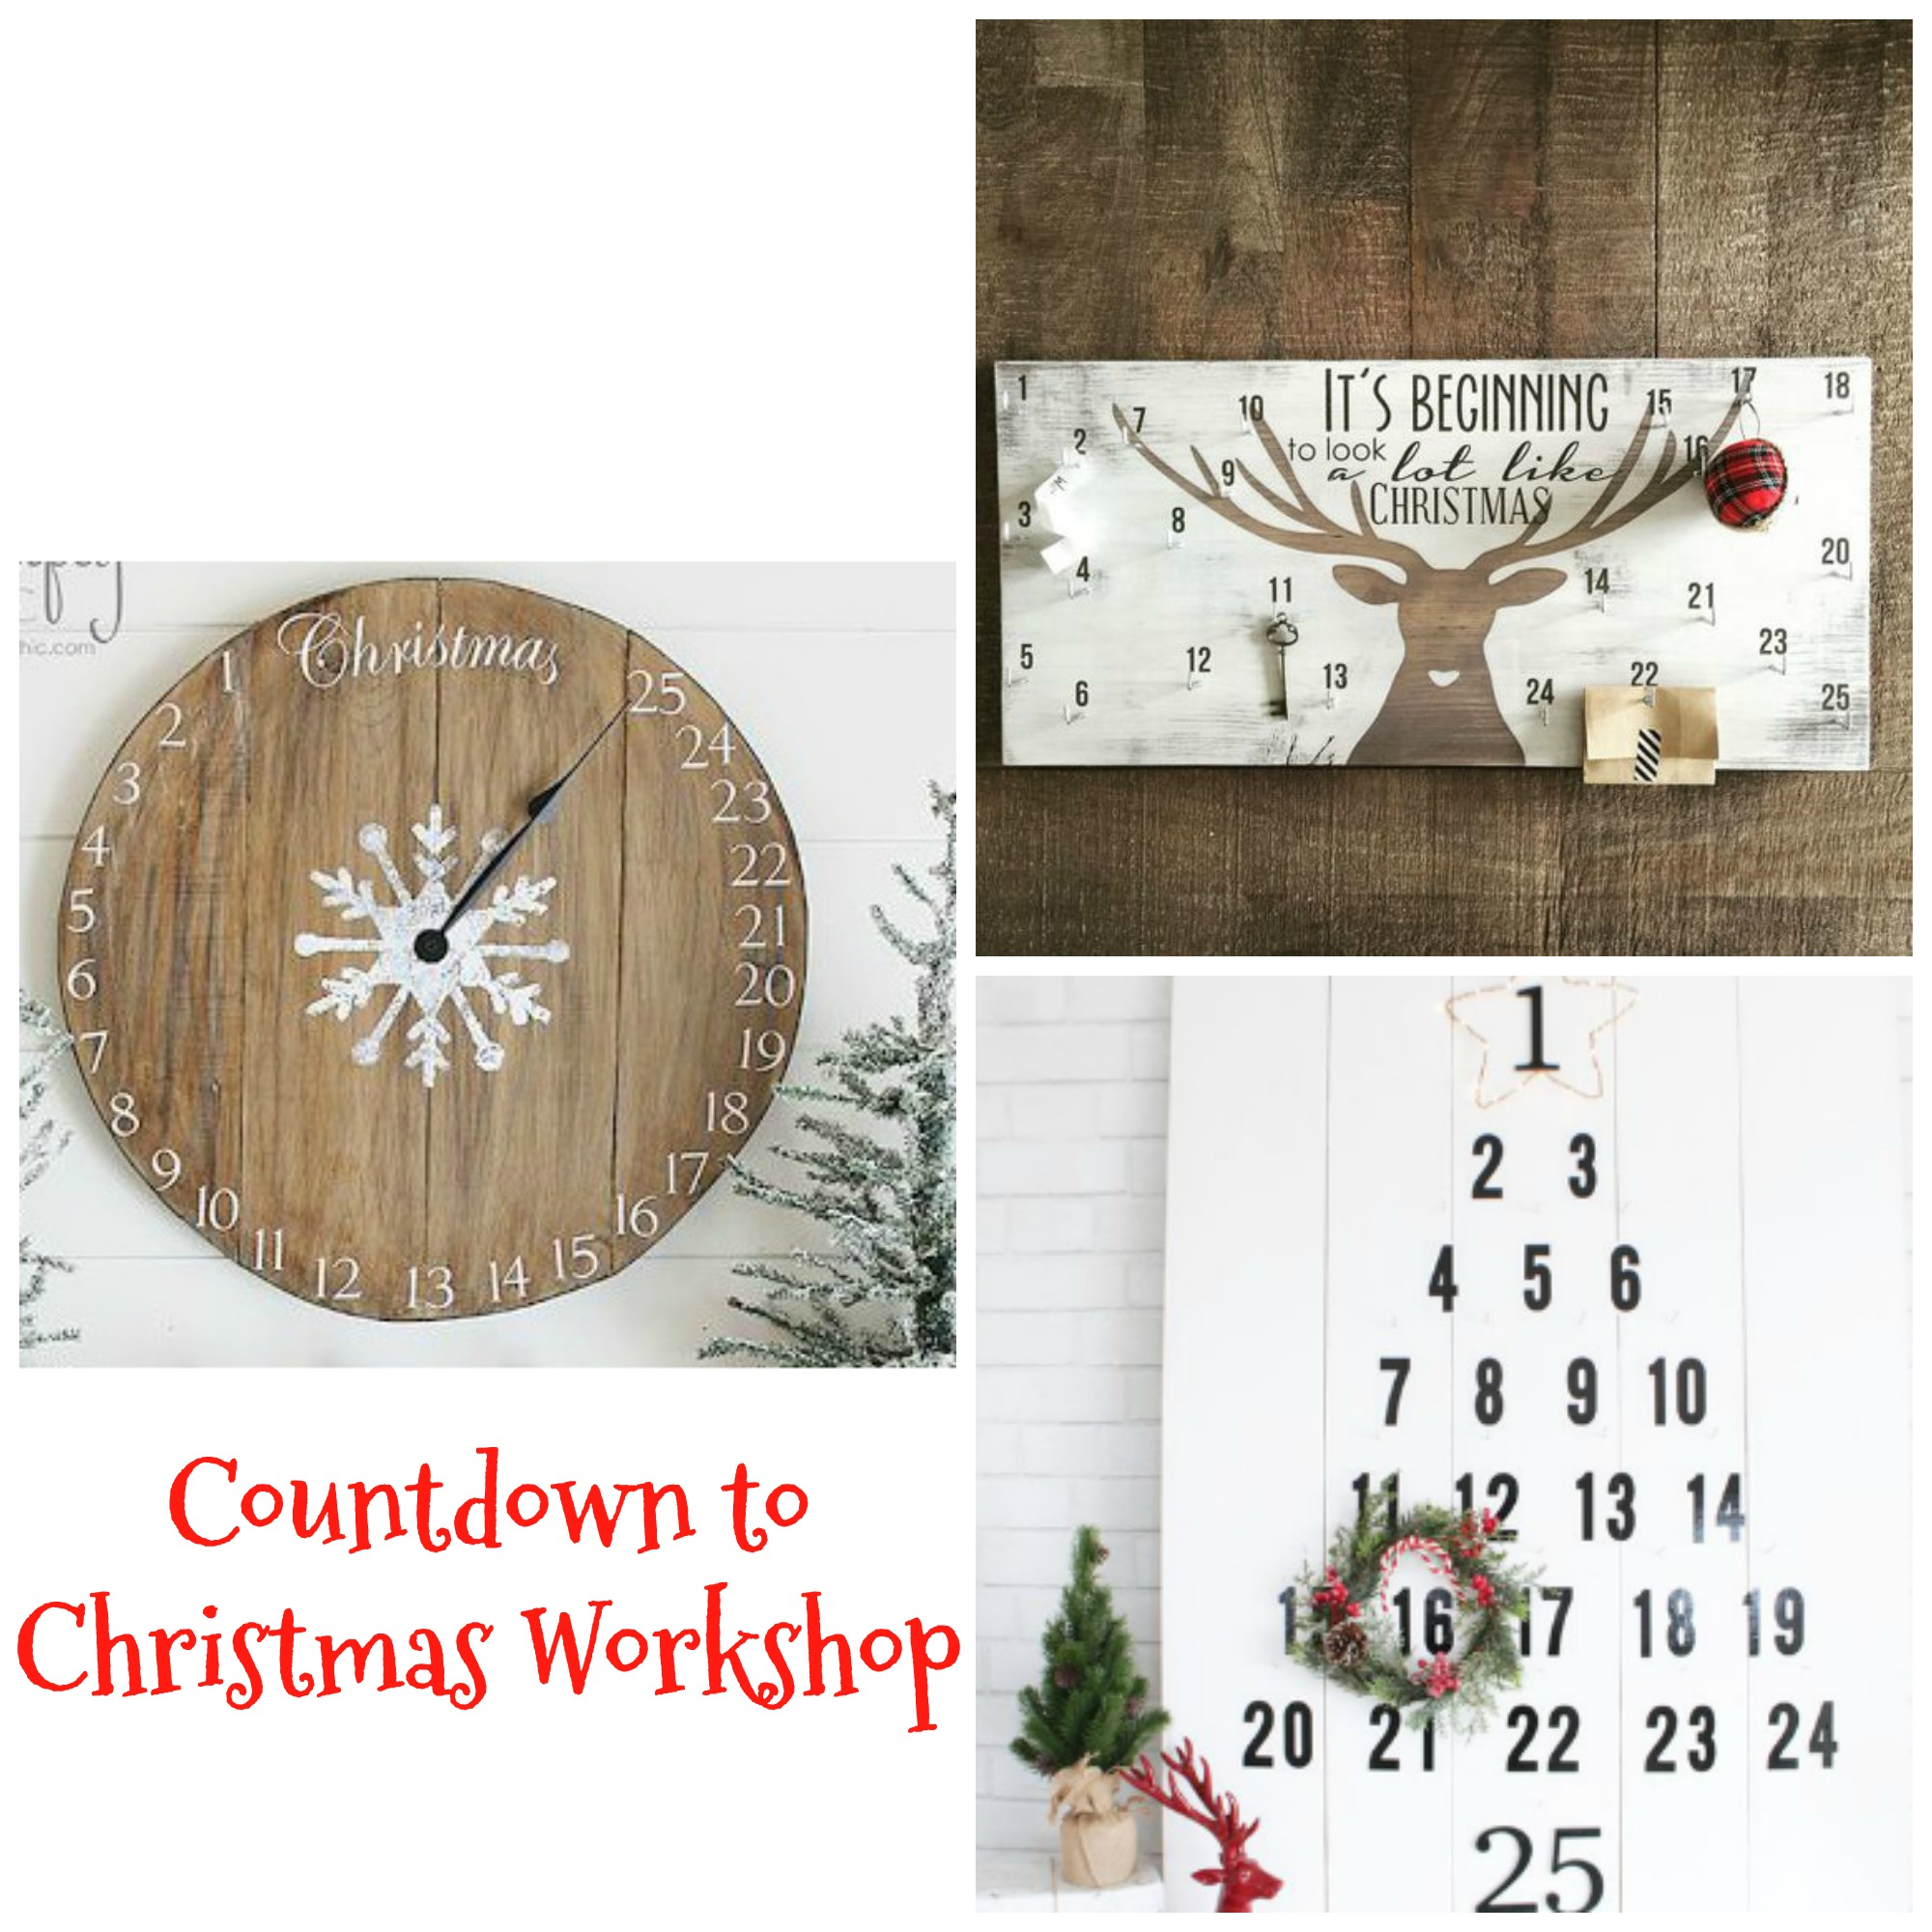 Christmas countdown calendar 1 interiormotives for Make your own christmas countdown calendar